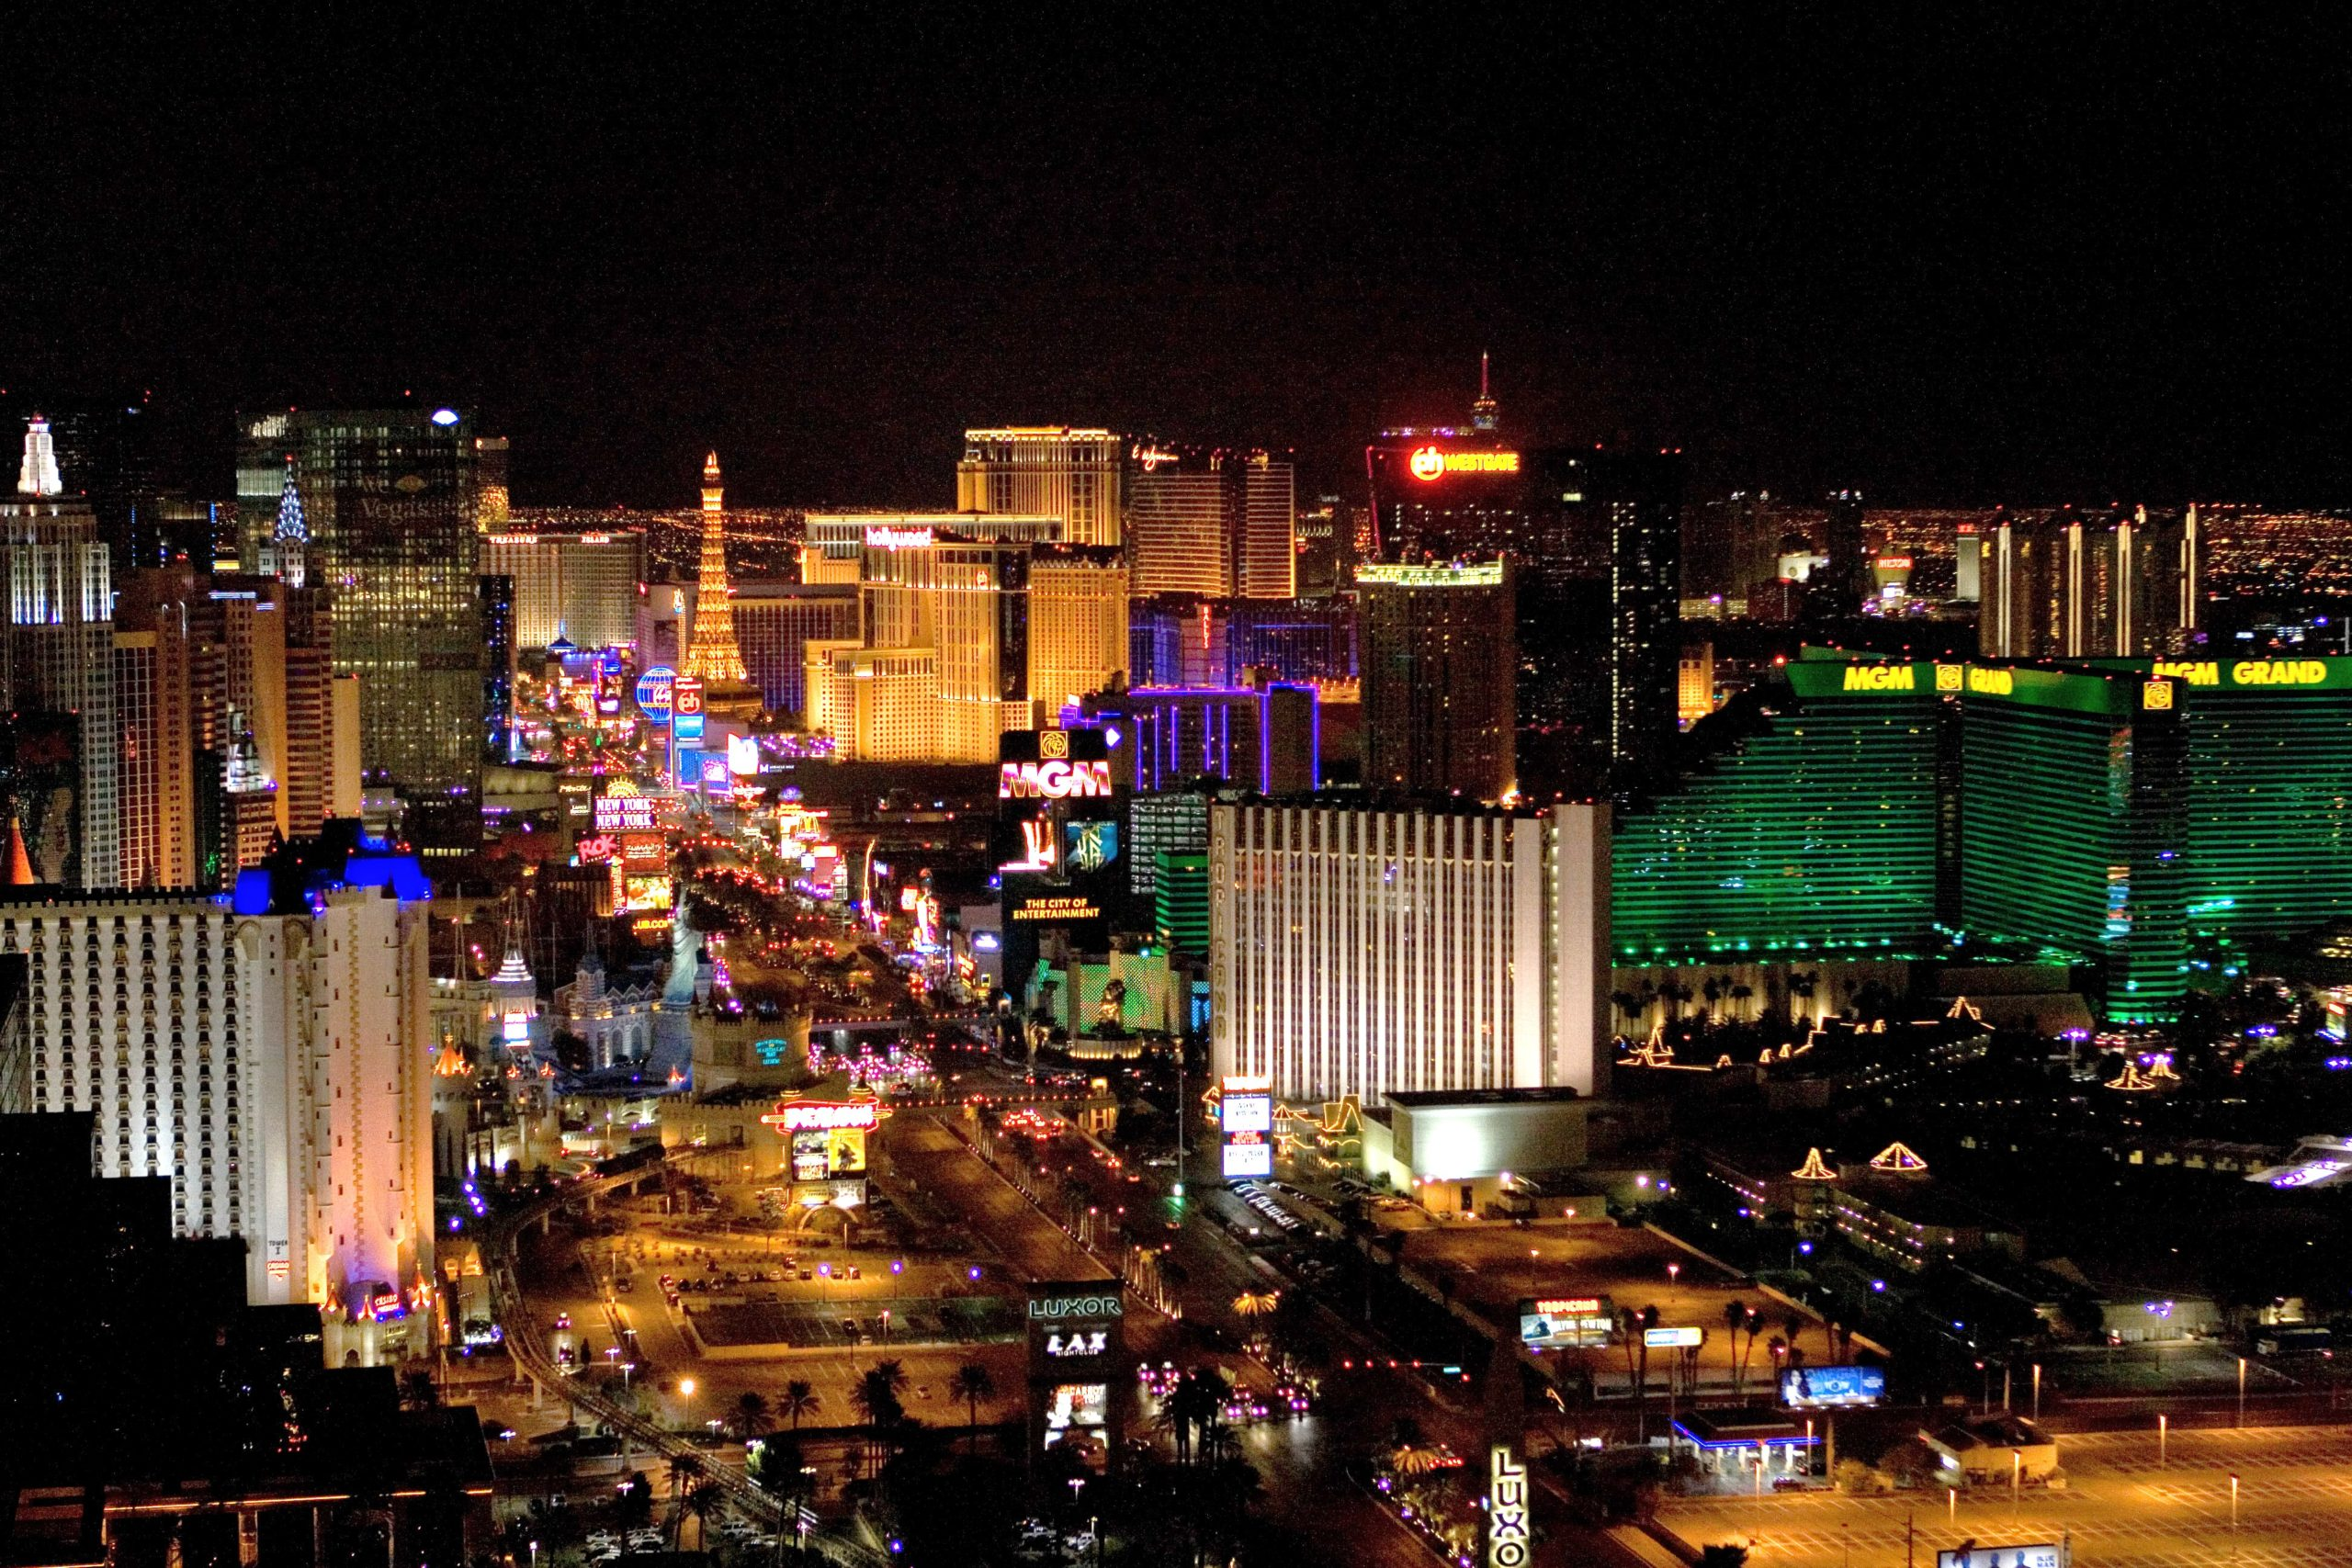 Reality-serien 2 Month 2 Millions spelades in i Las Vegas